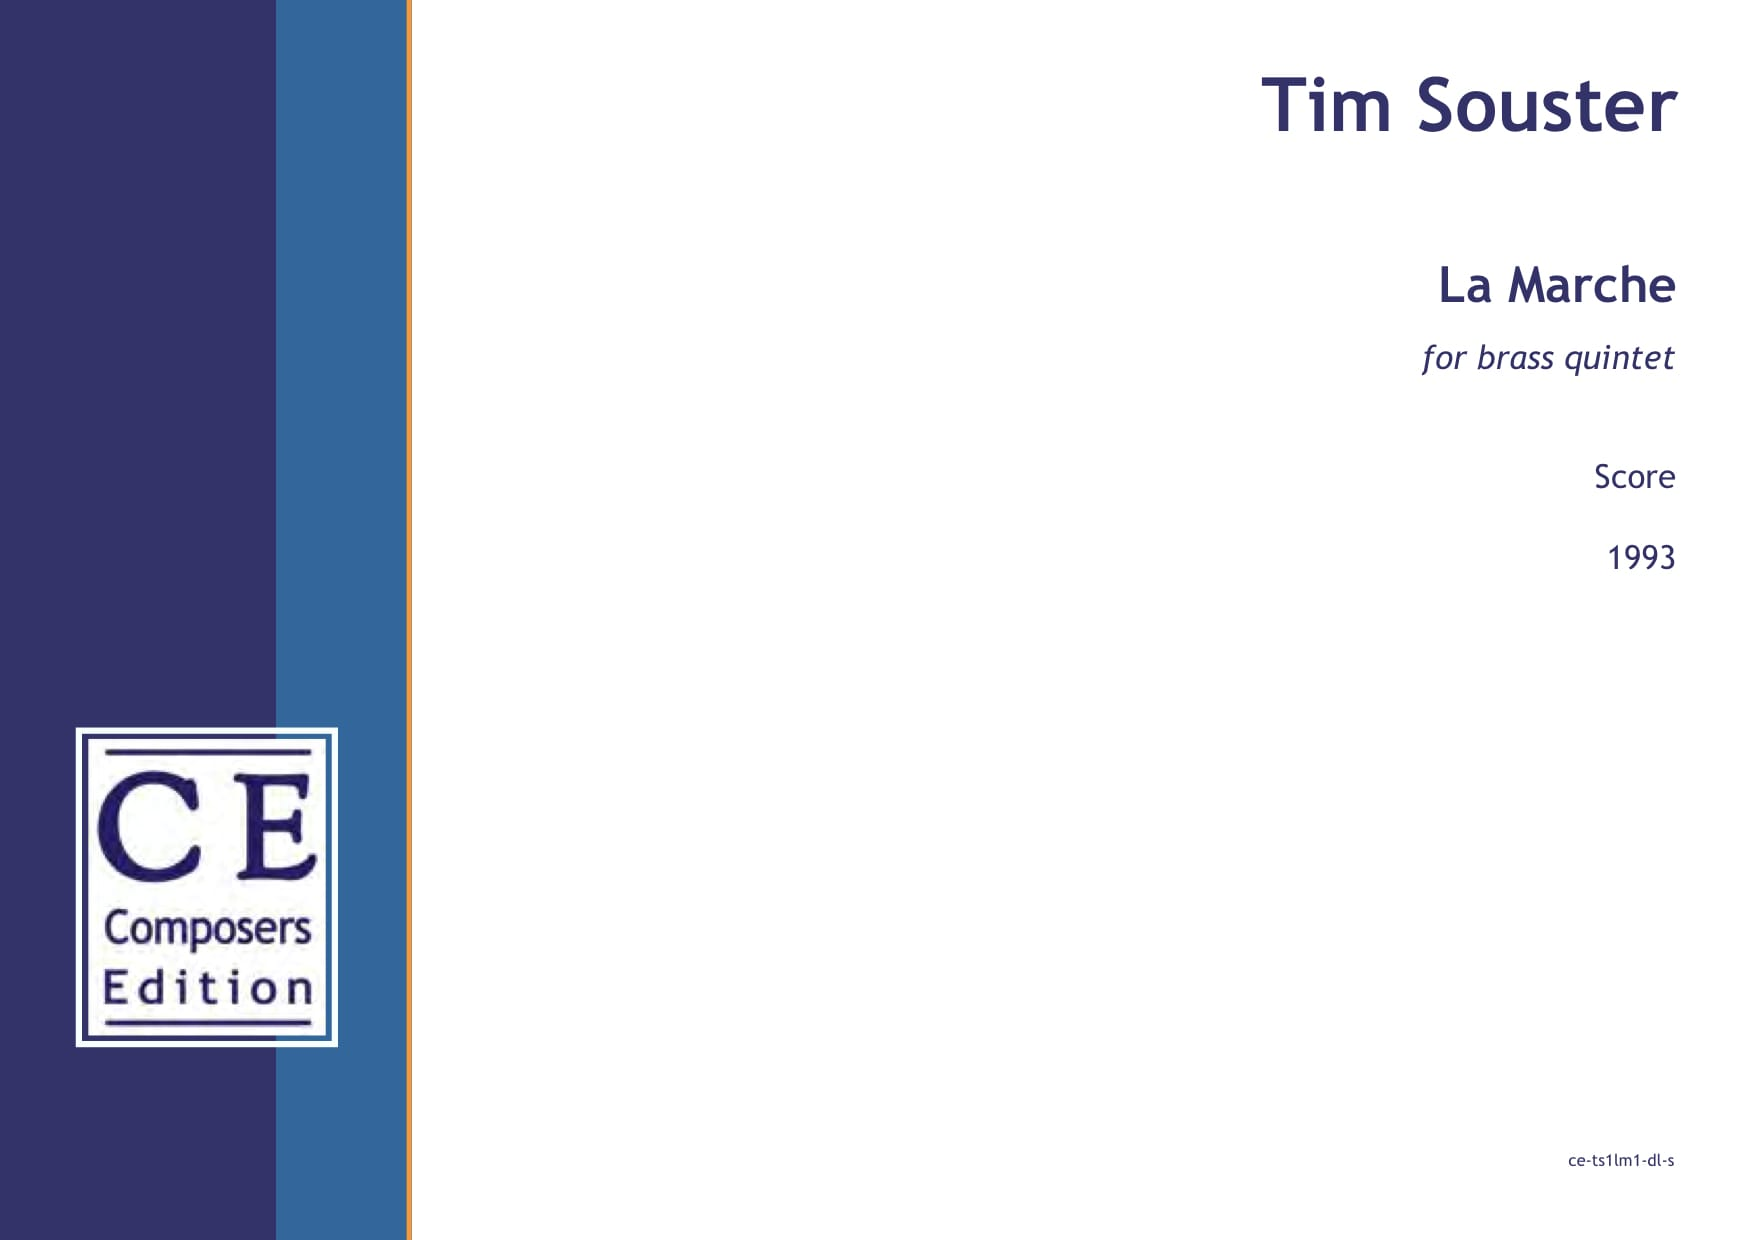 Tim Souster: La Marche for brass quintet